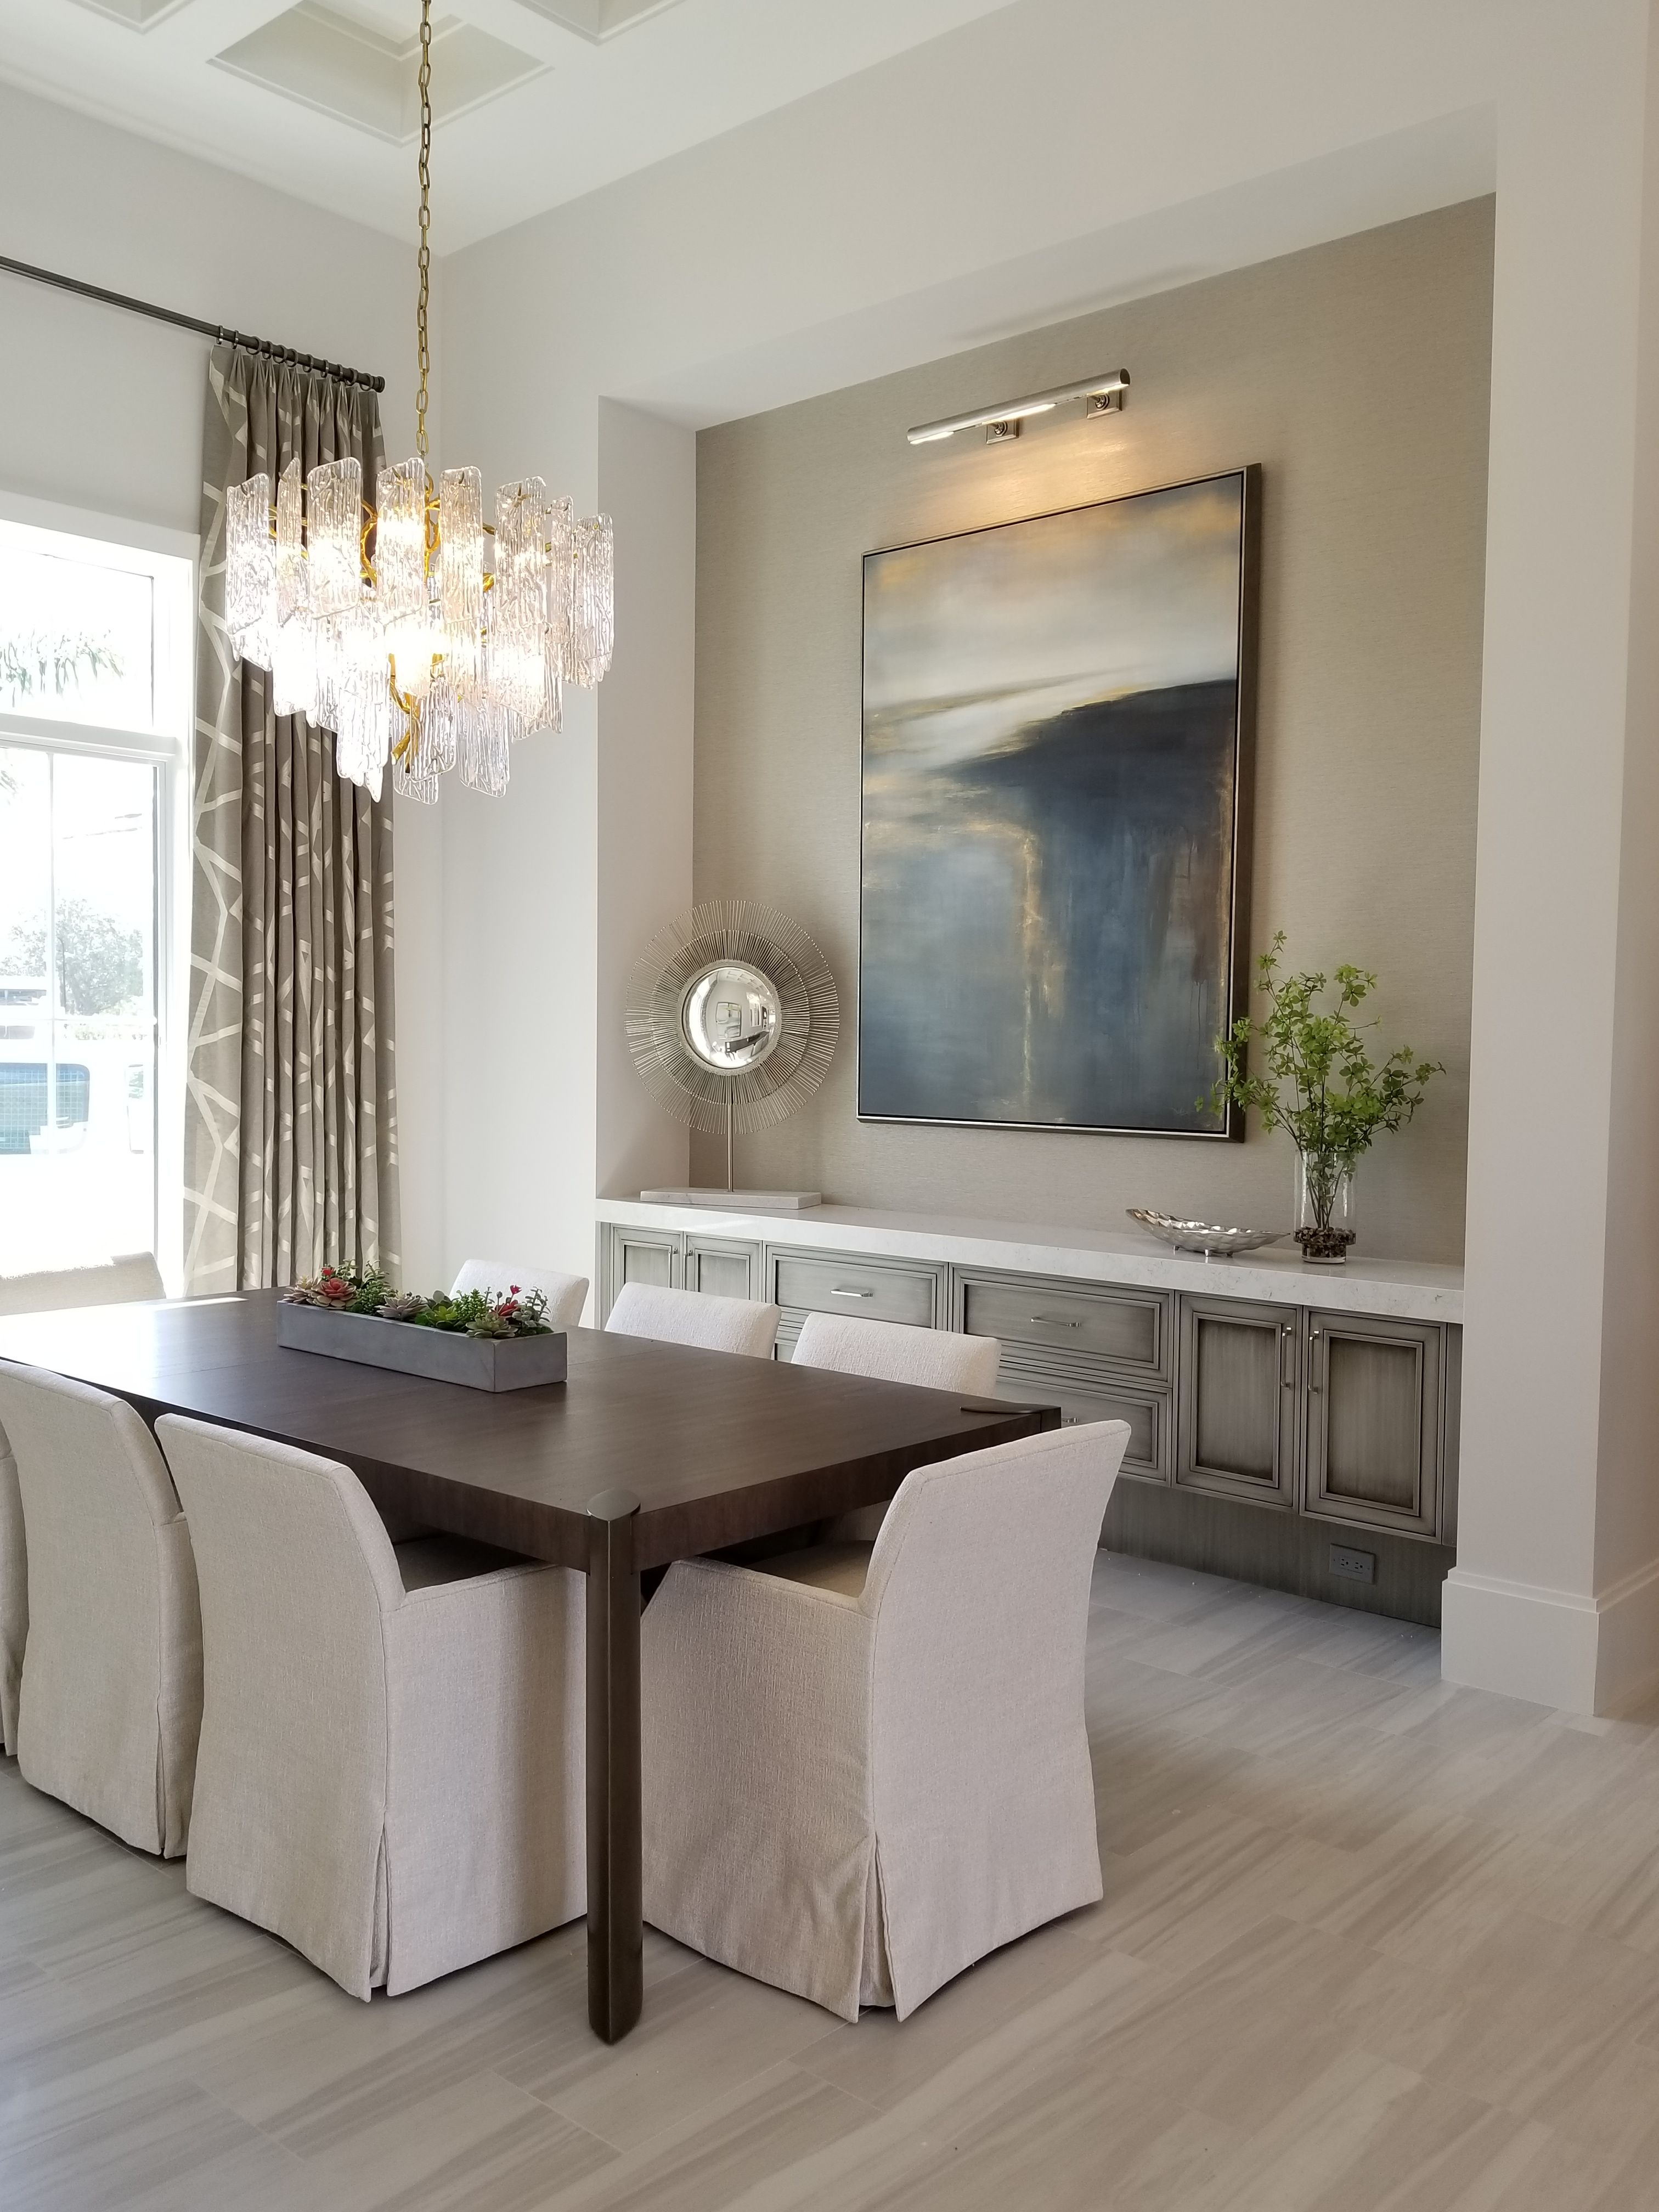 Designing Your Home With Beasley Henley Interior Design